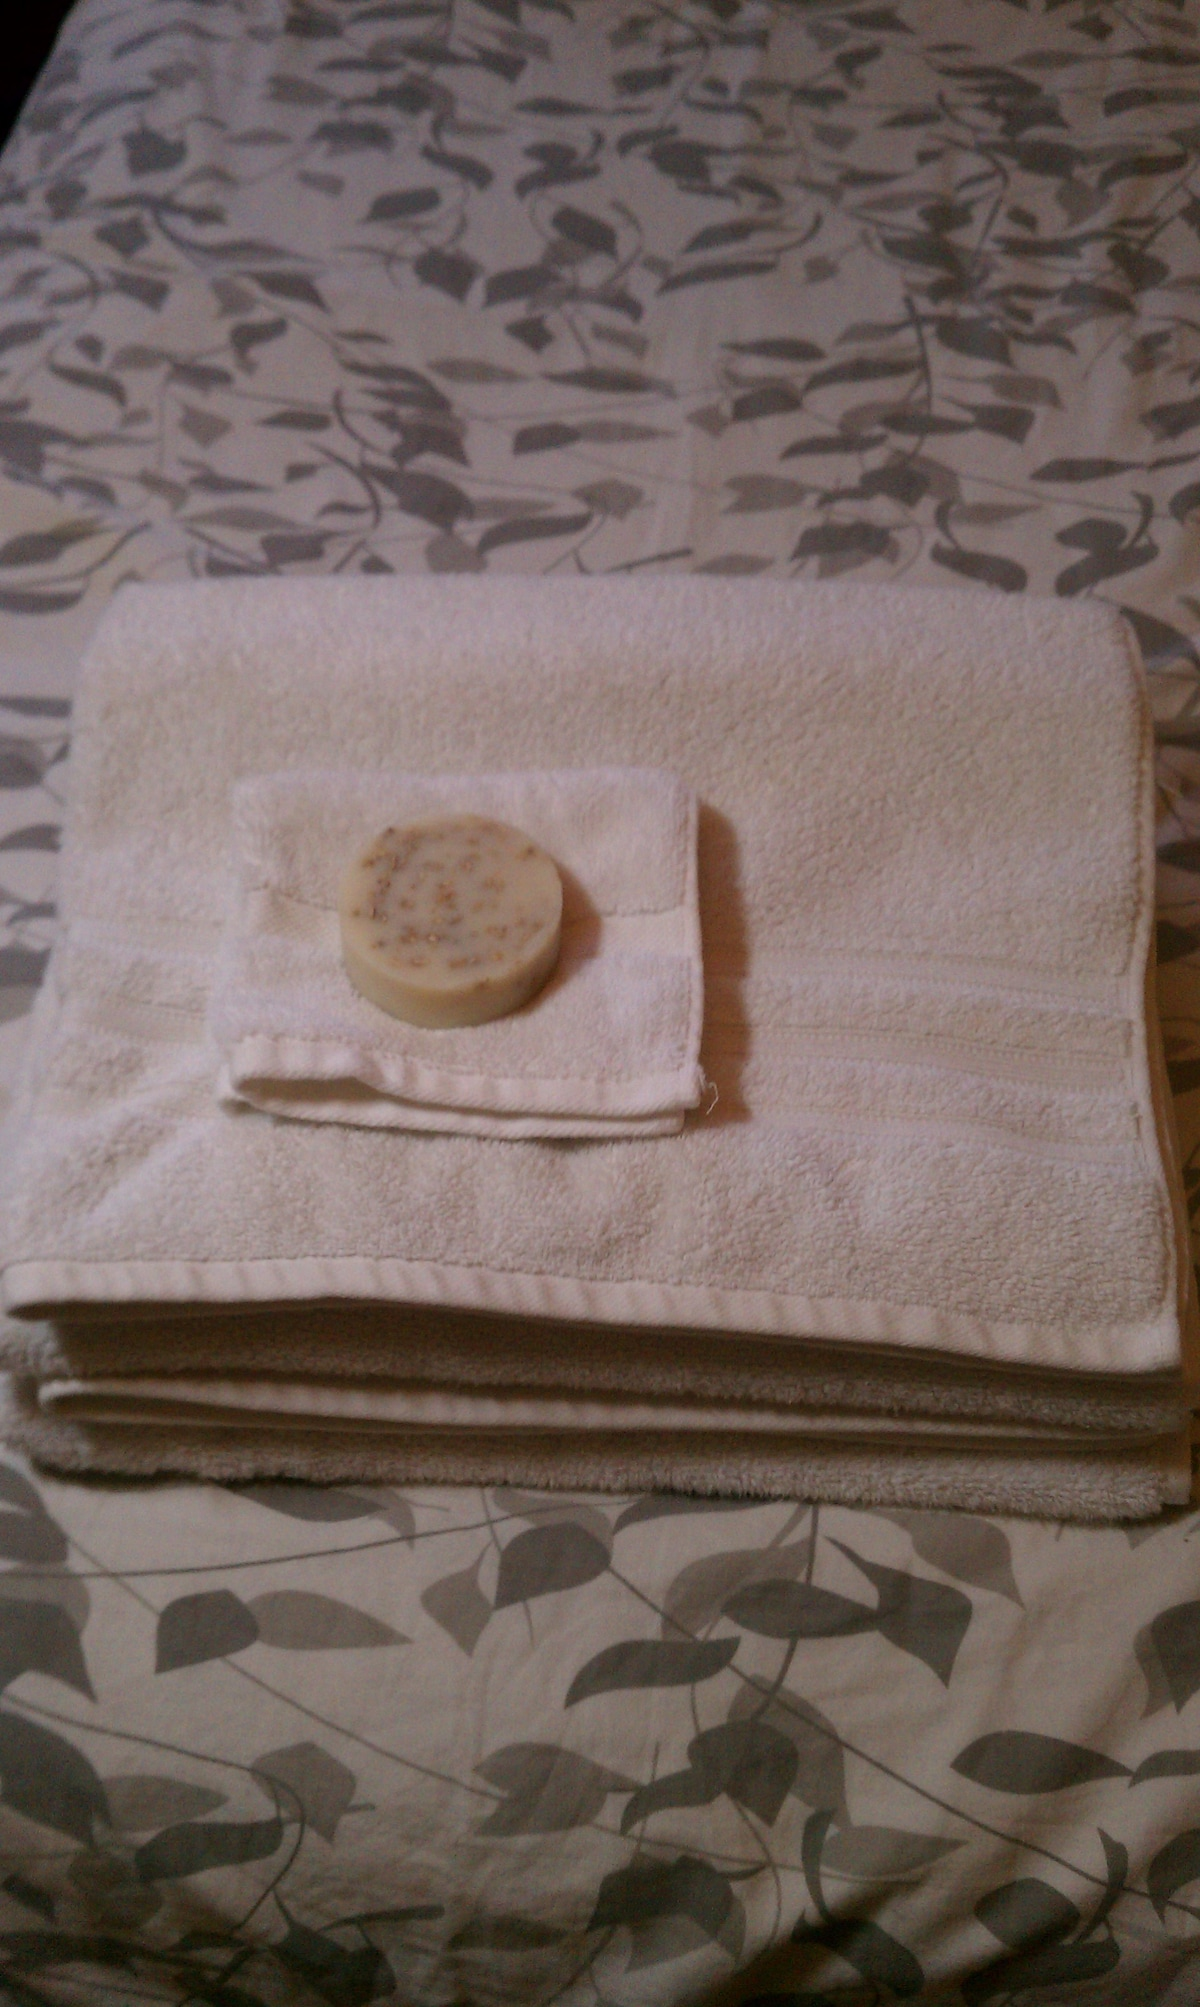 Fresh towels and soap